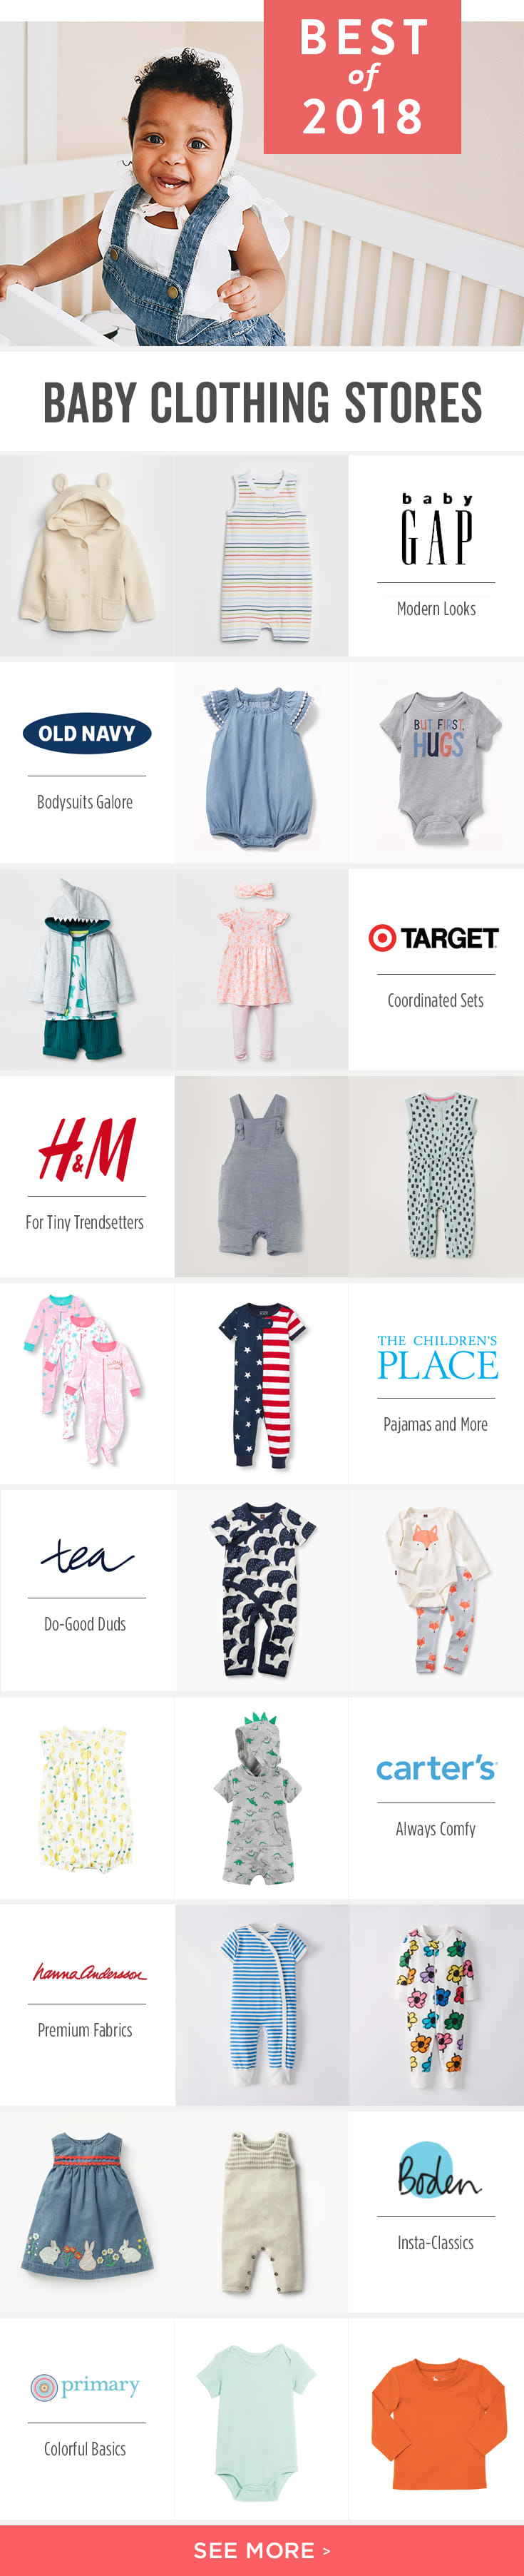 Best Baby Clothing Stores of 2018